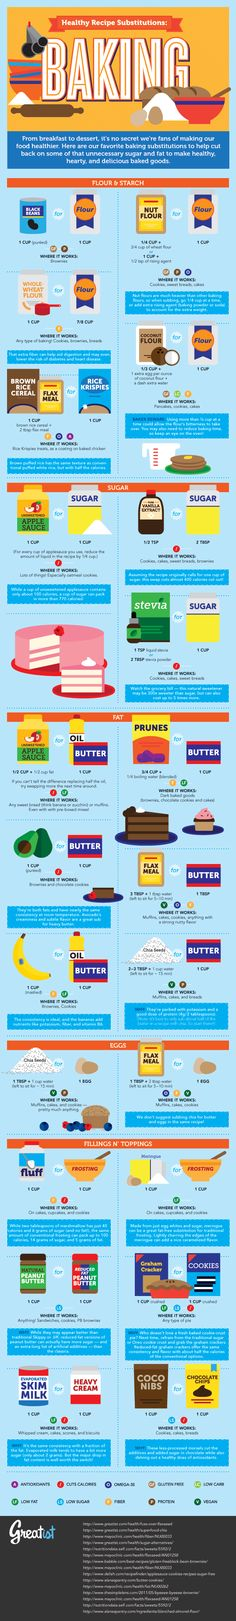 The Ultimate Guide to HealthierBaking | Health.com